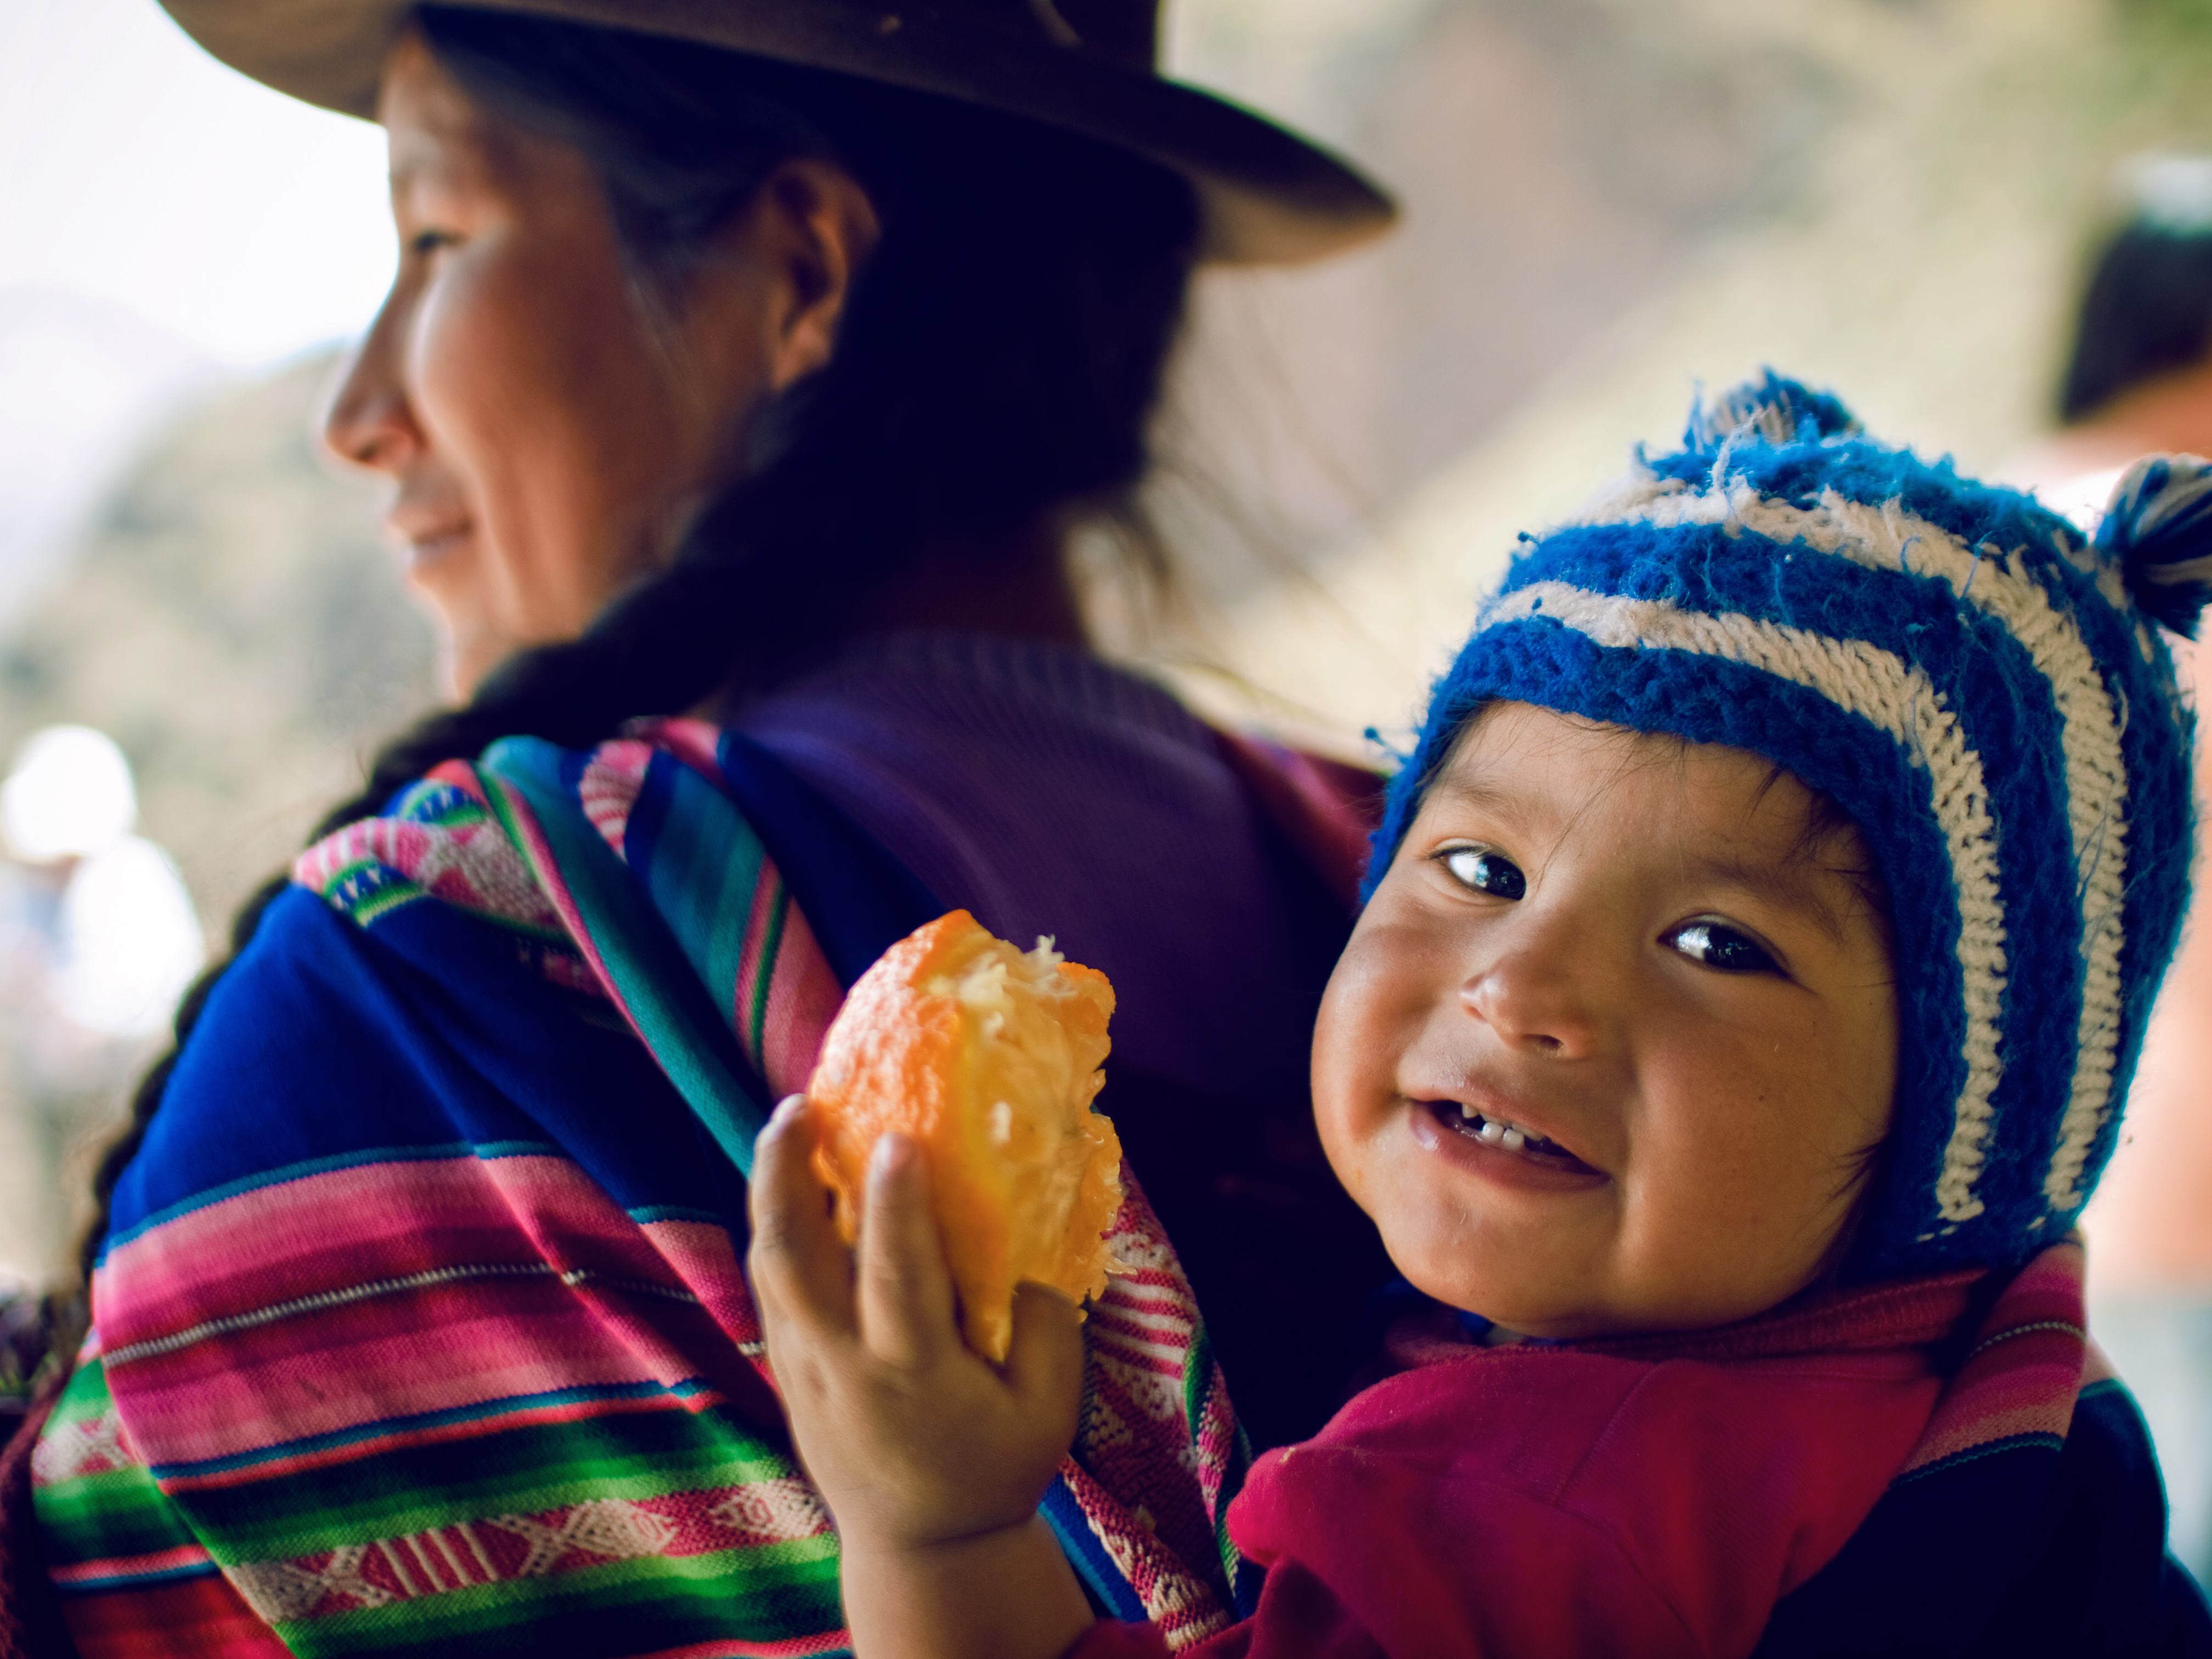 A children and her mother, wearing typical Andean wool dresses and hats, nearby the ruins of P?sac, Valle de los Incas, Peru